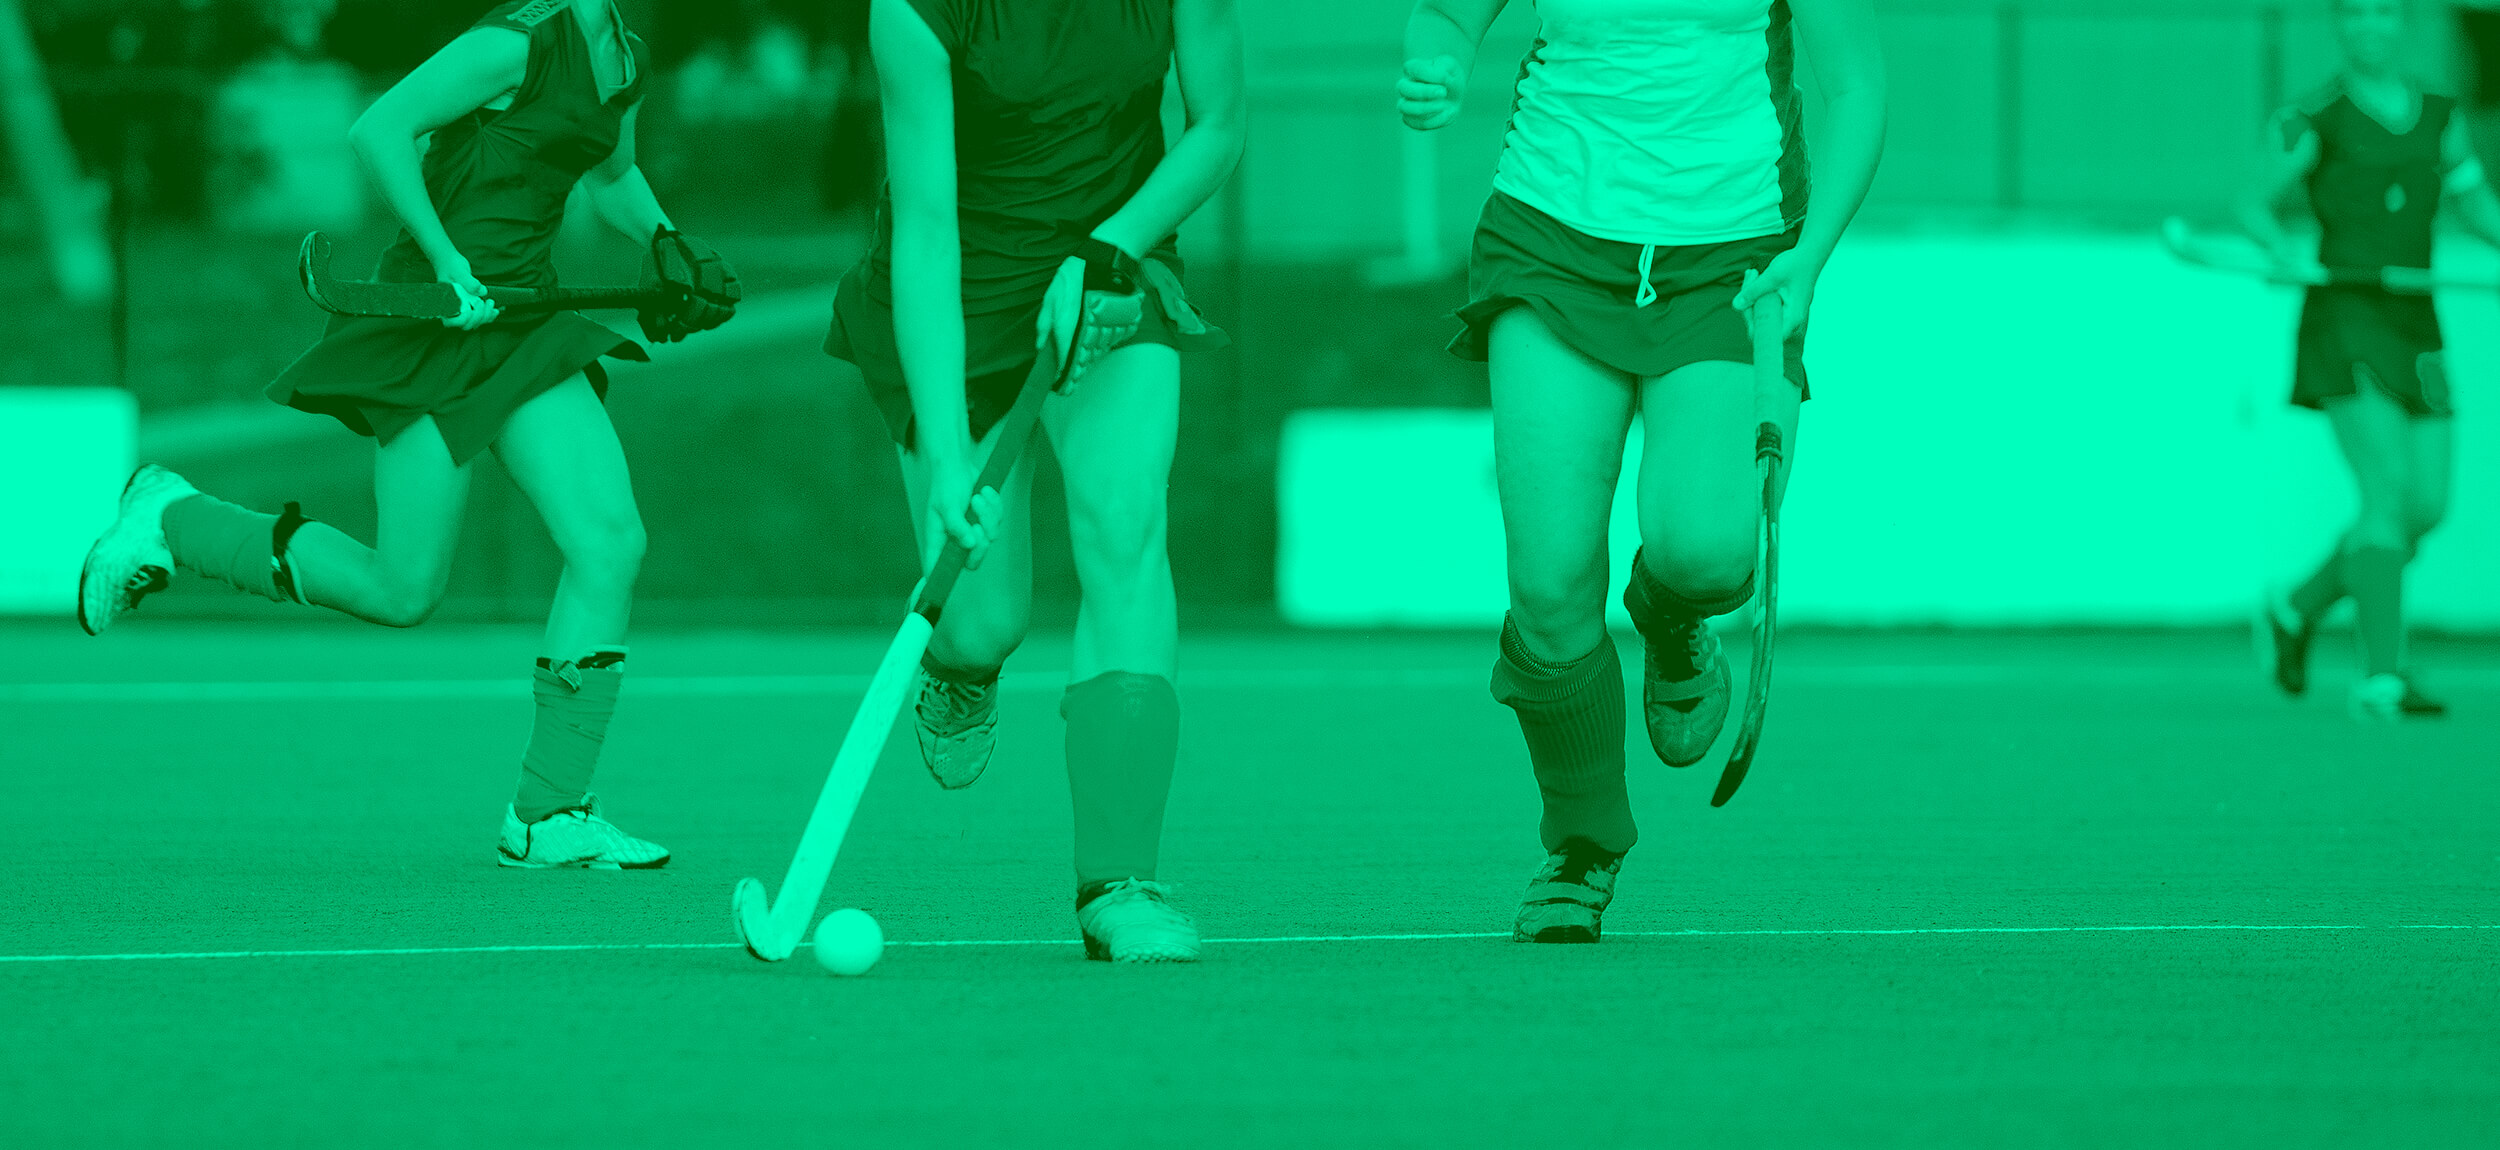 Field-Hockey-Youth-World-Games-Tournament-Portugal